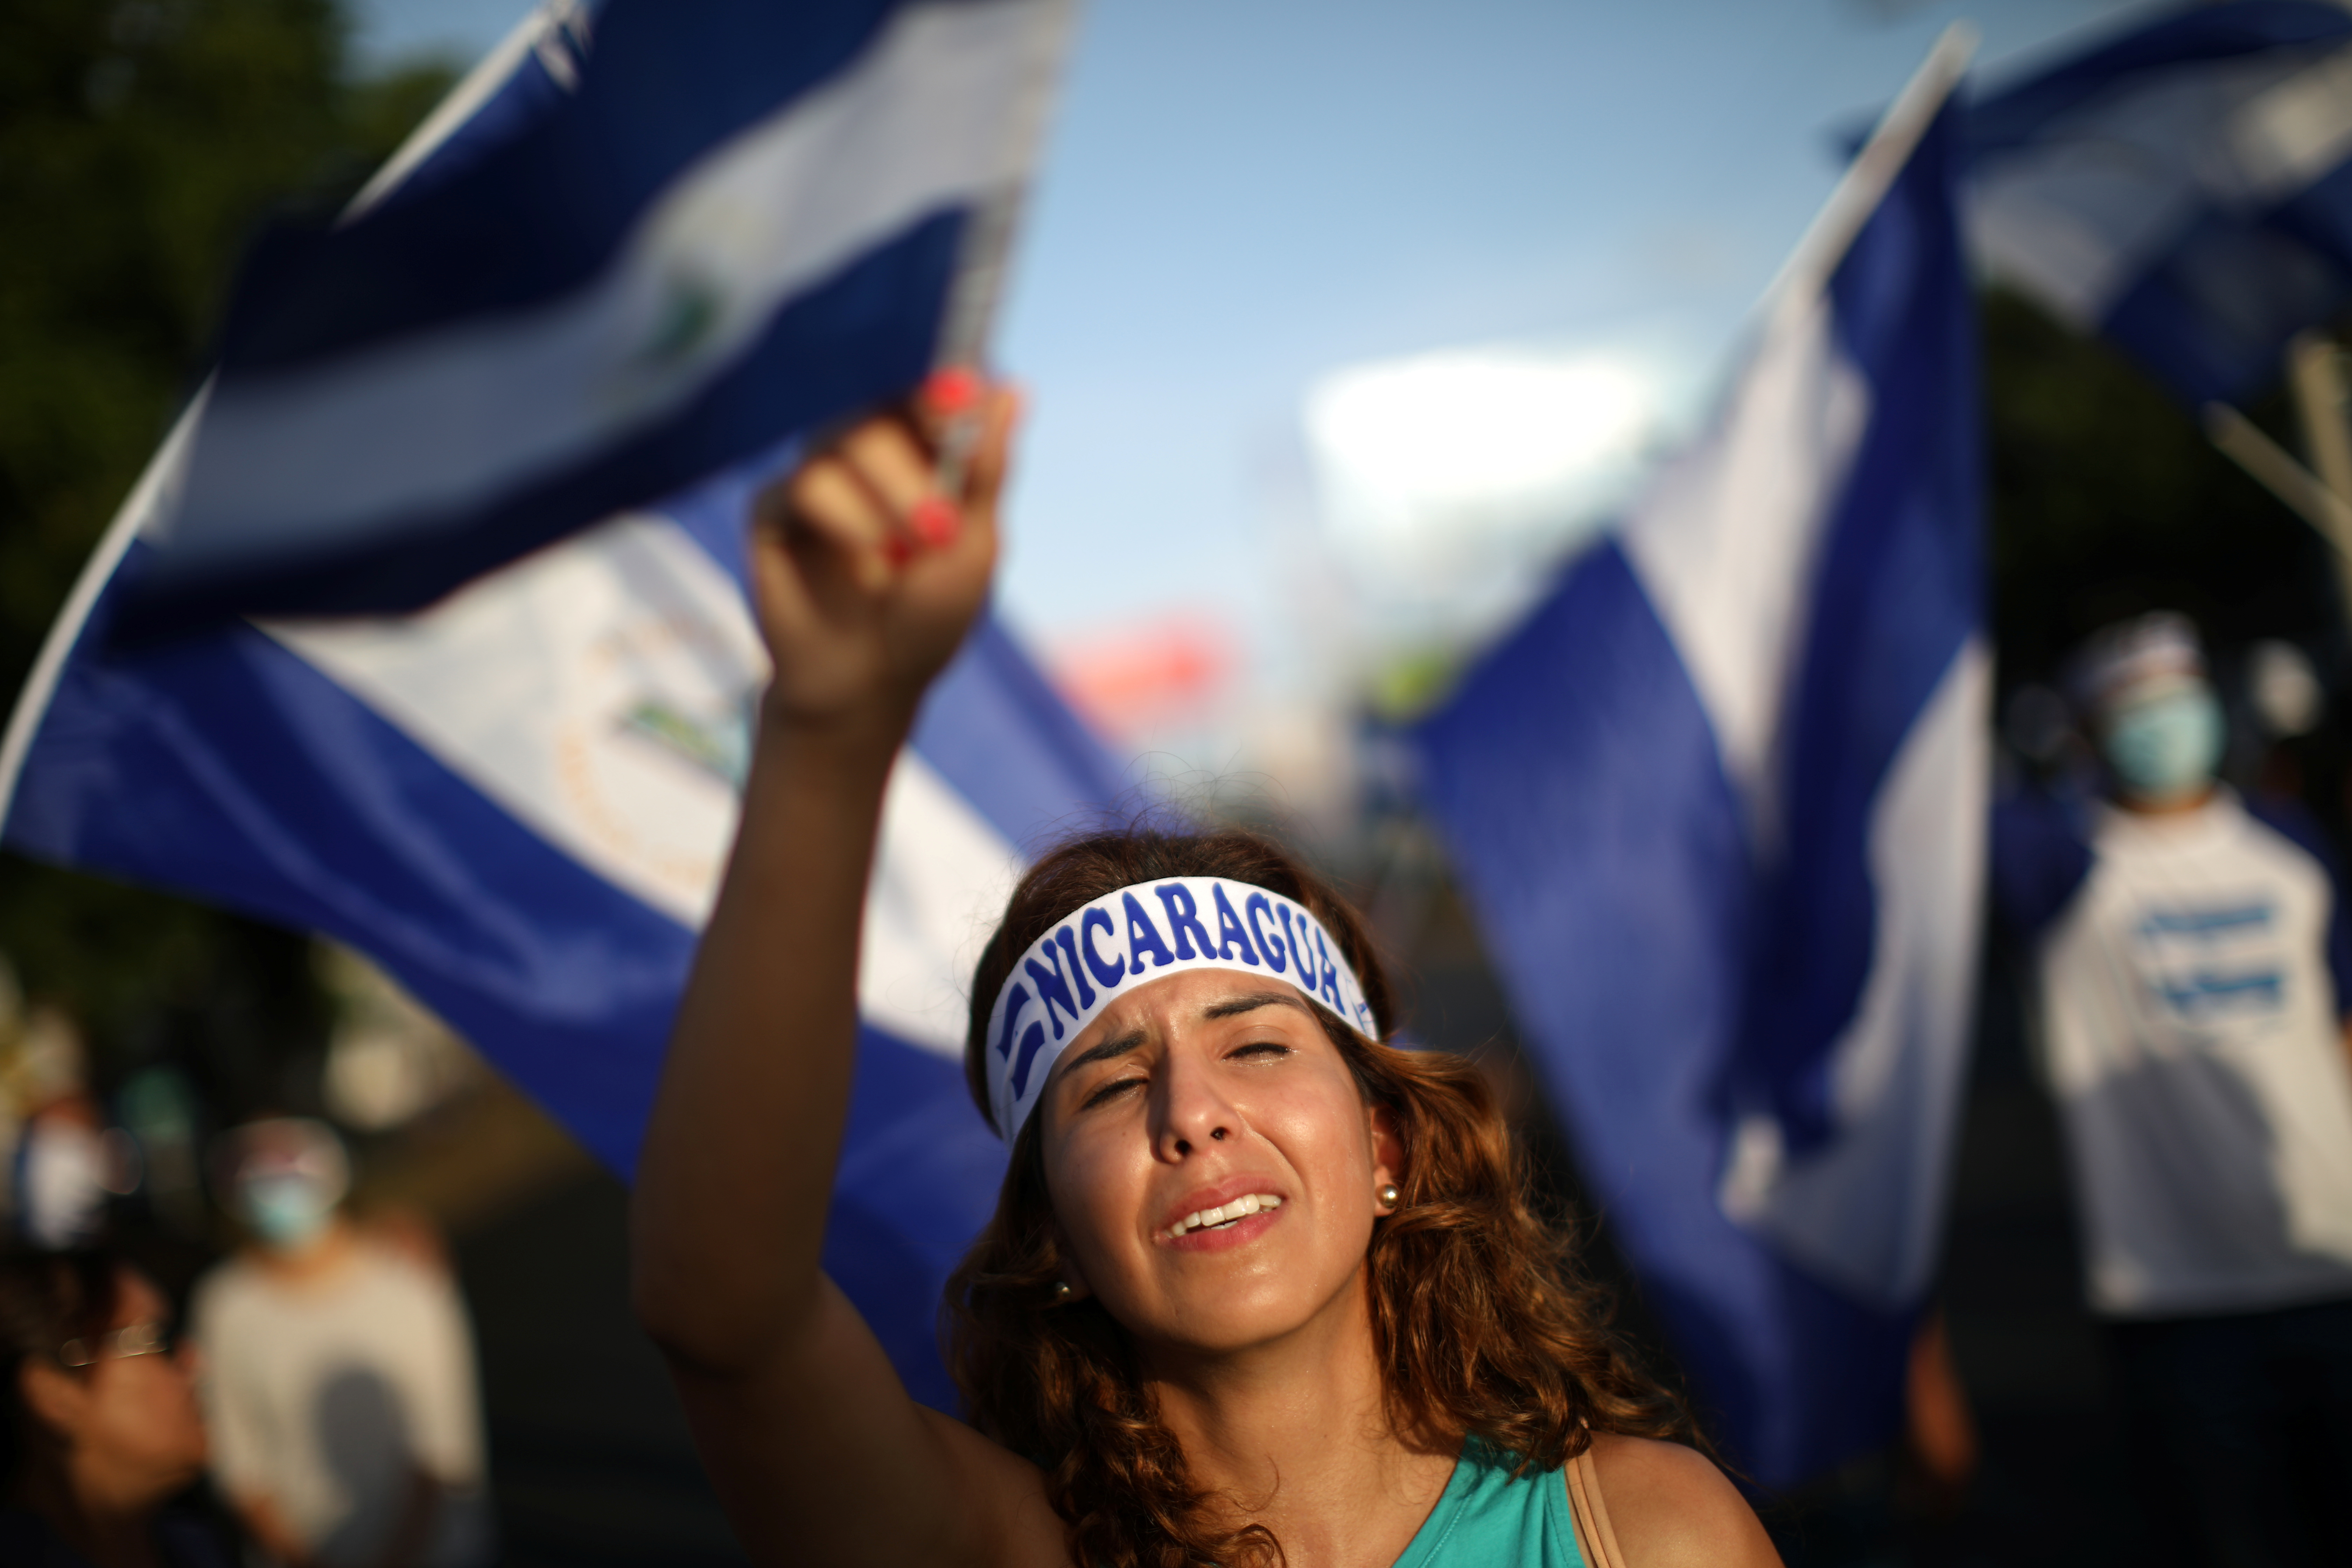 A demonstrator cries as she sings a song during a protest in Managua, Nicaragua, June 18, 2018.